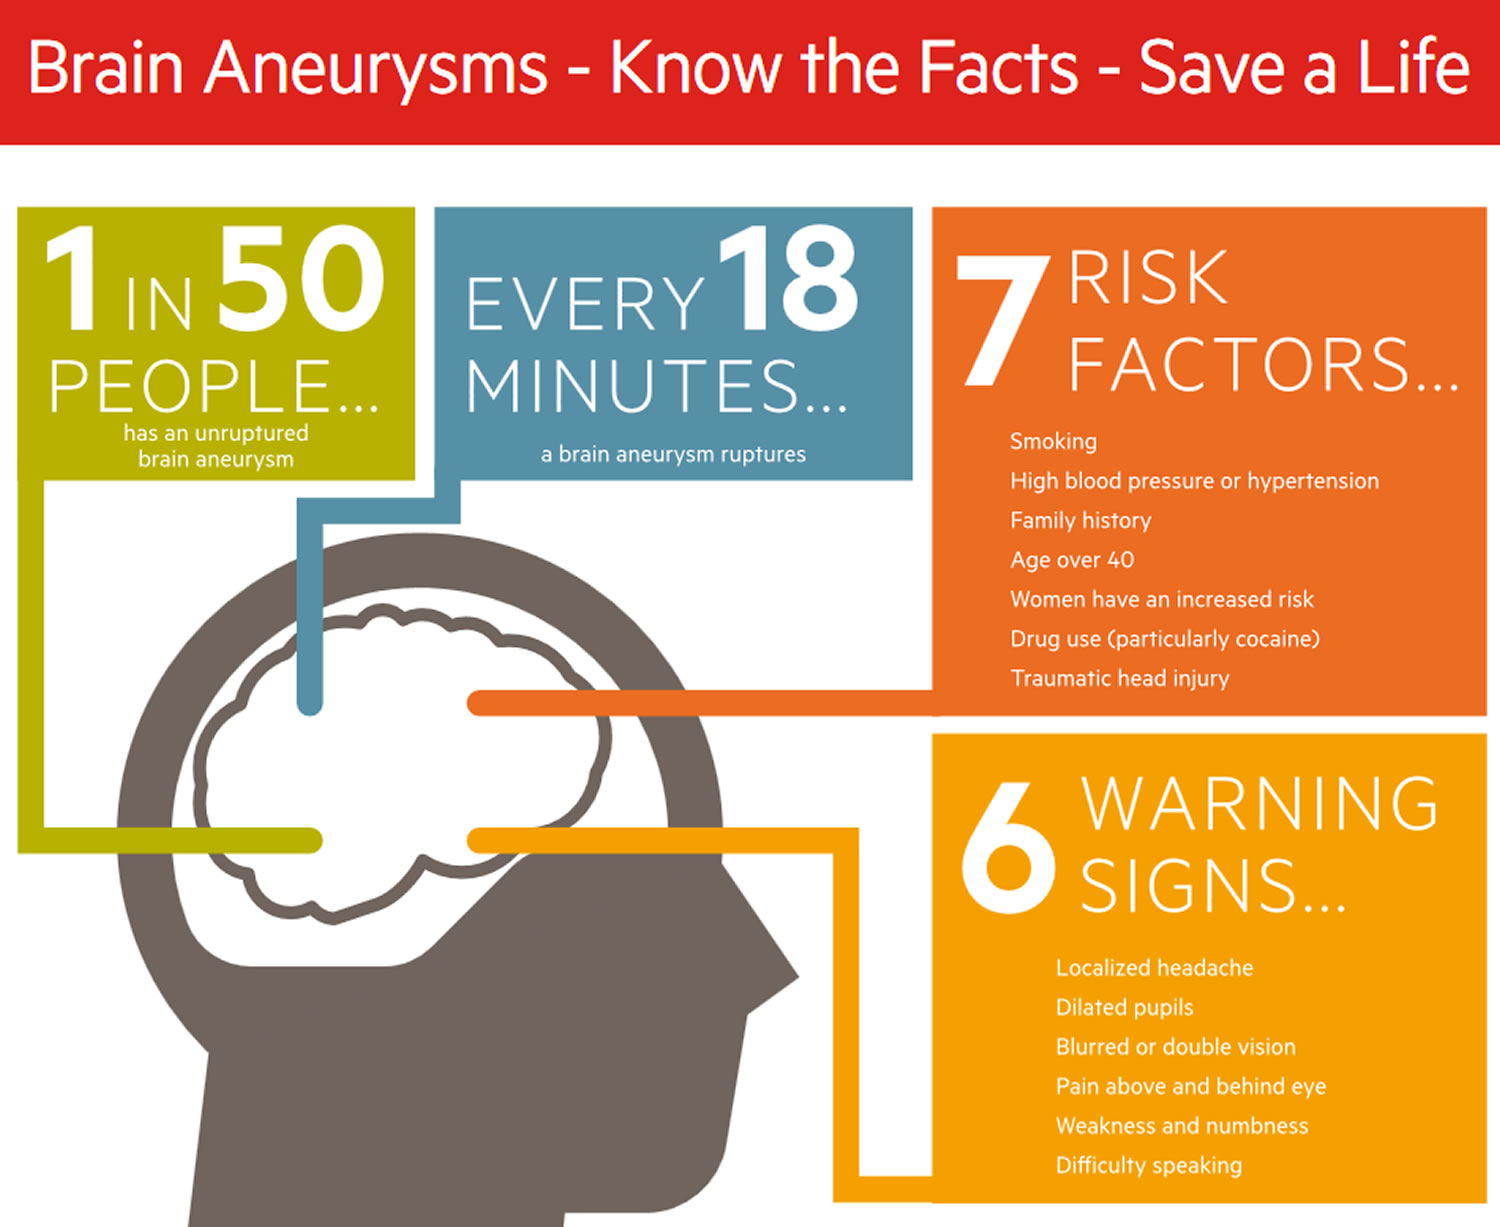 How to Detect an Aneurysm